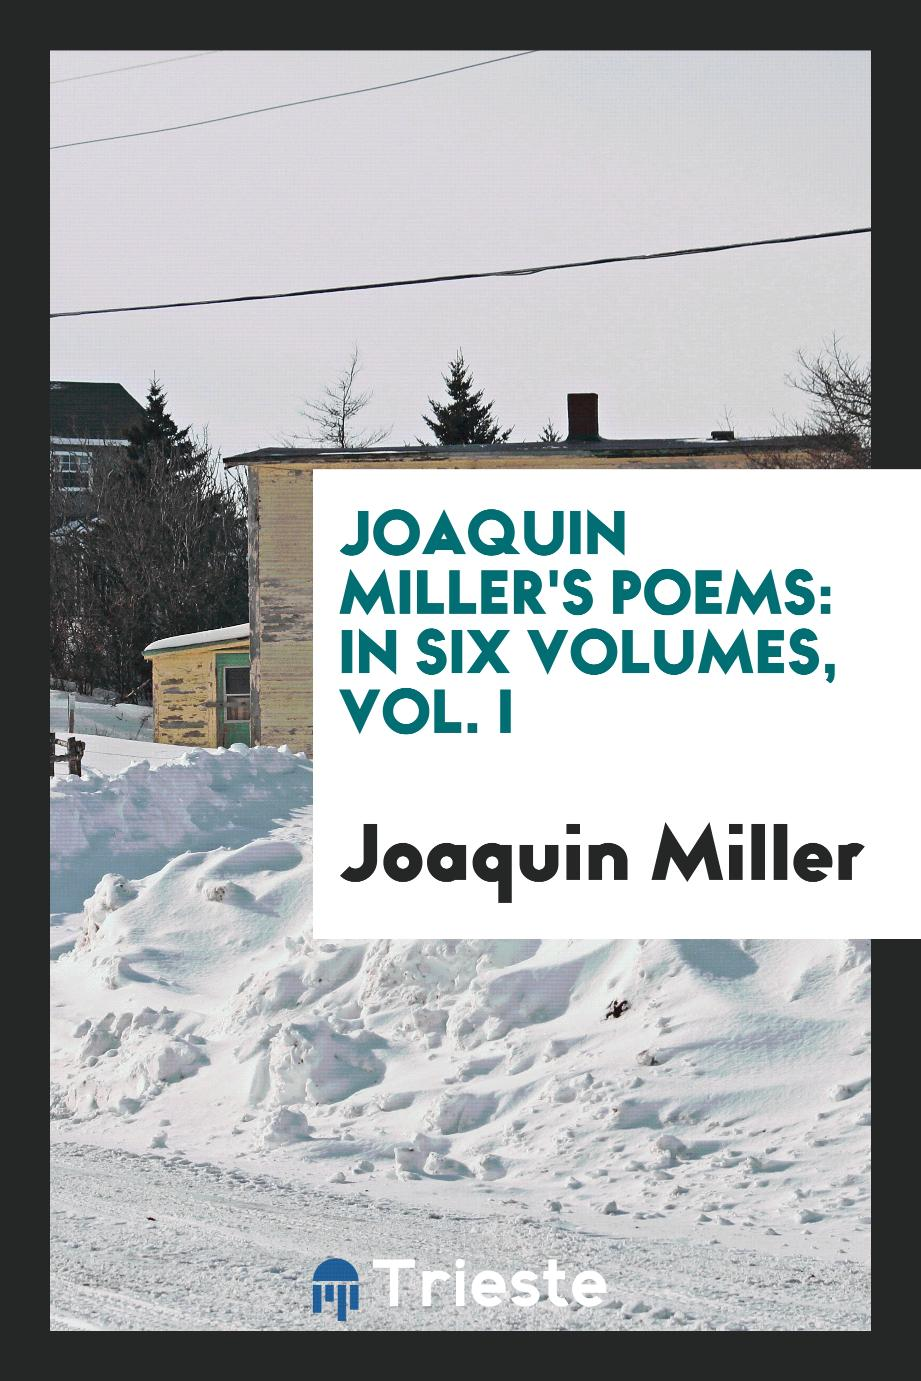 Joaquin Miller's poems: in six volumes, Vol. I